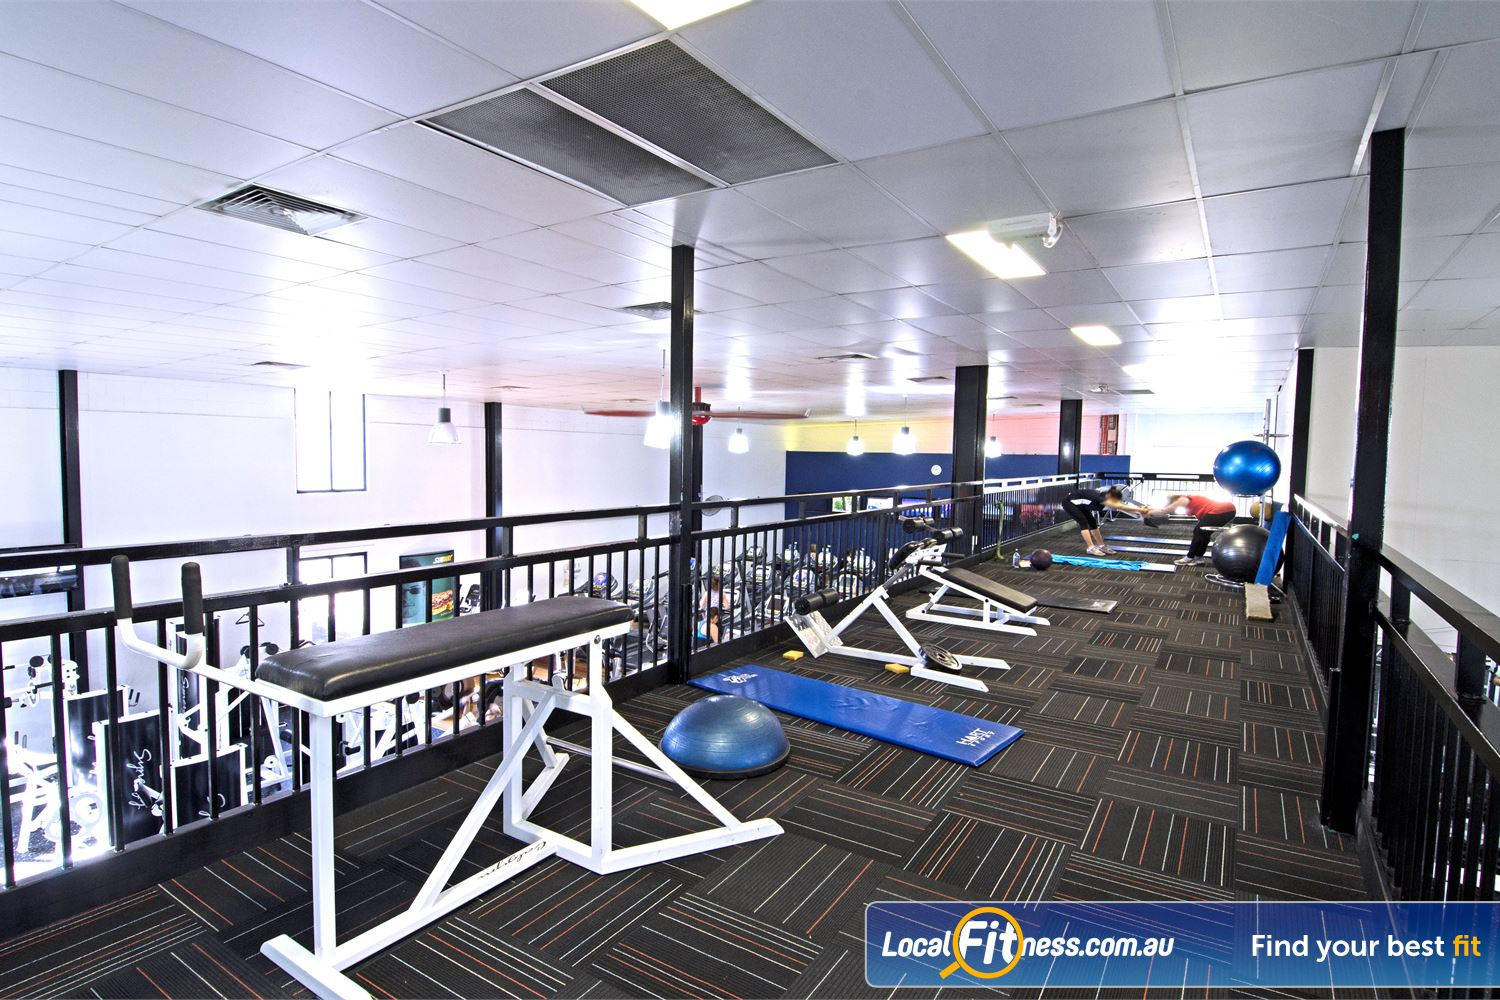 Goodlife Health Clubs Graceville Fully equipped and dedicated stretch and abs area.